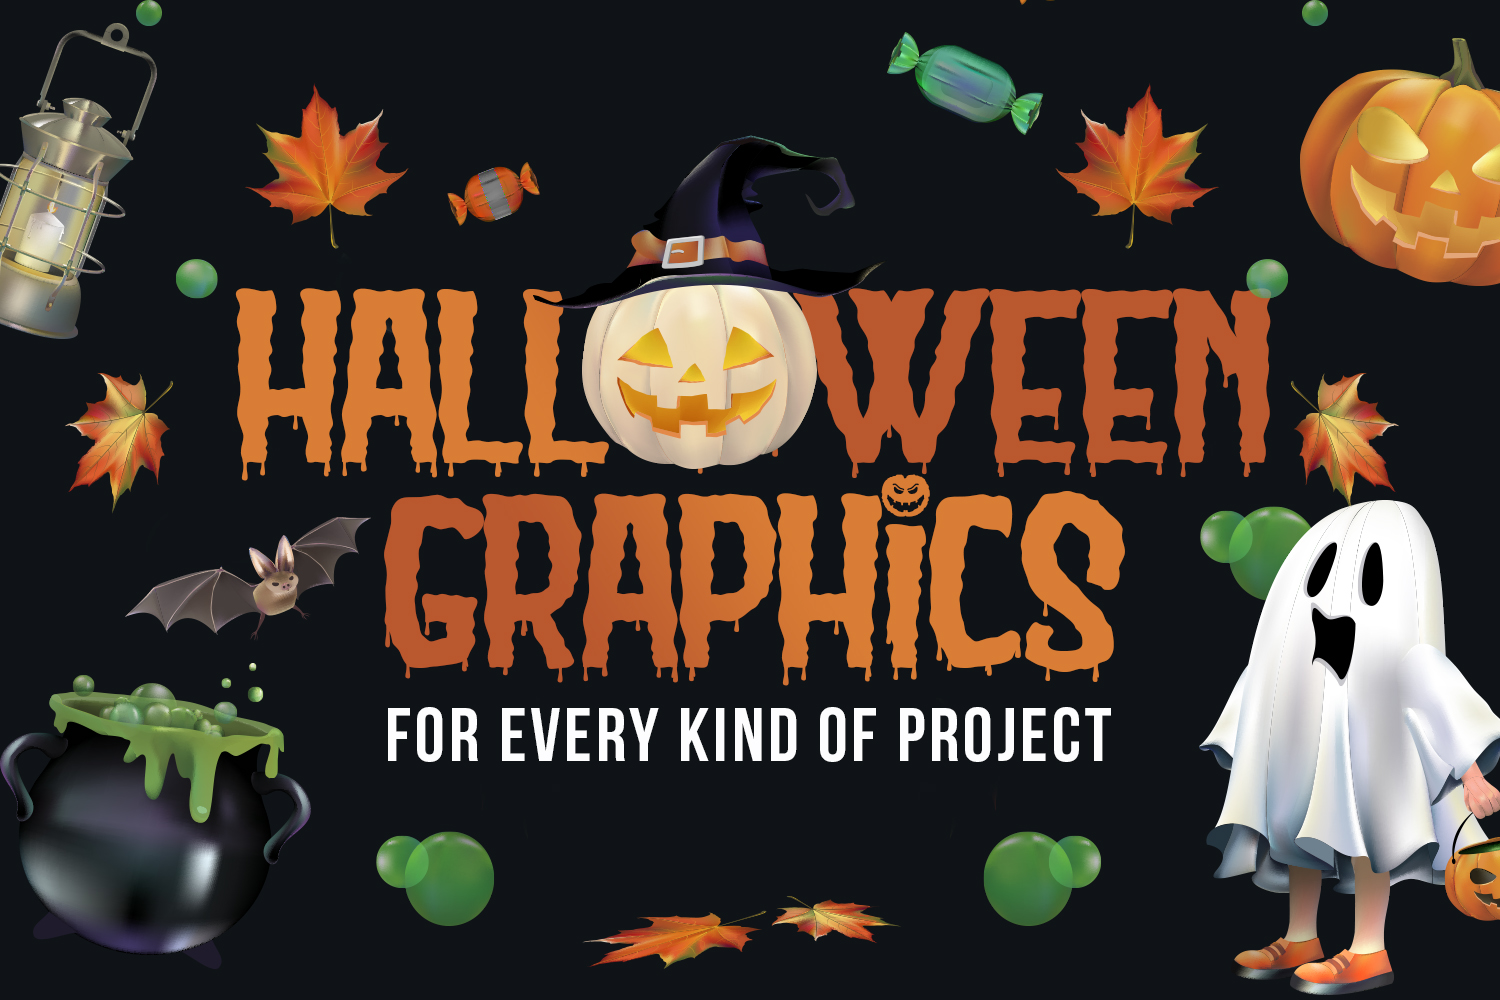 Halloween Graphics for Every Kind of Project